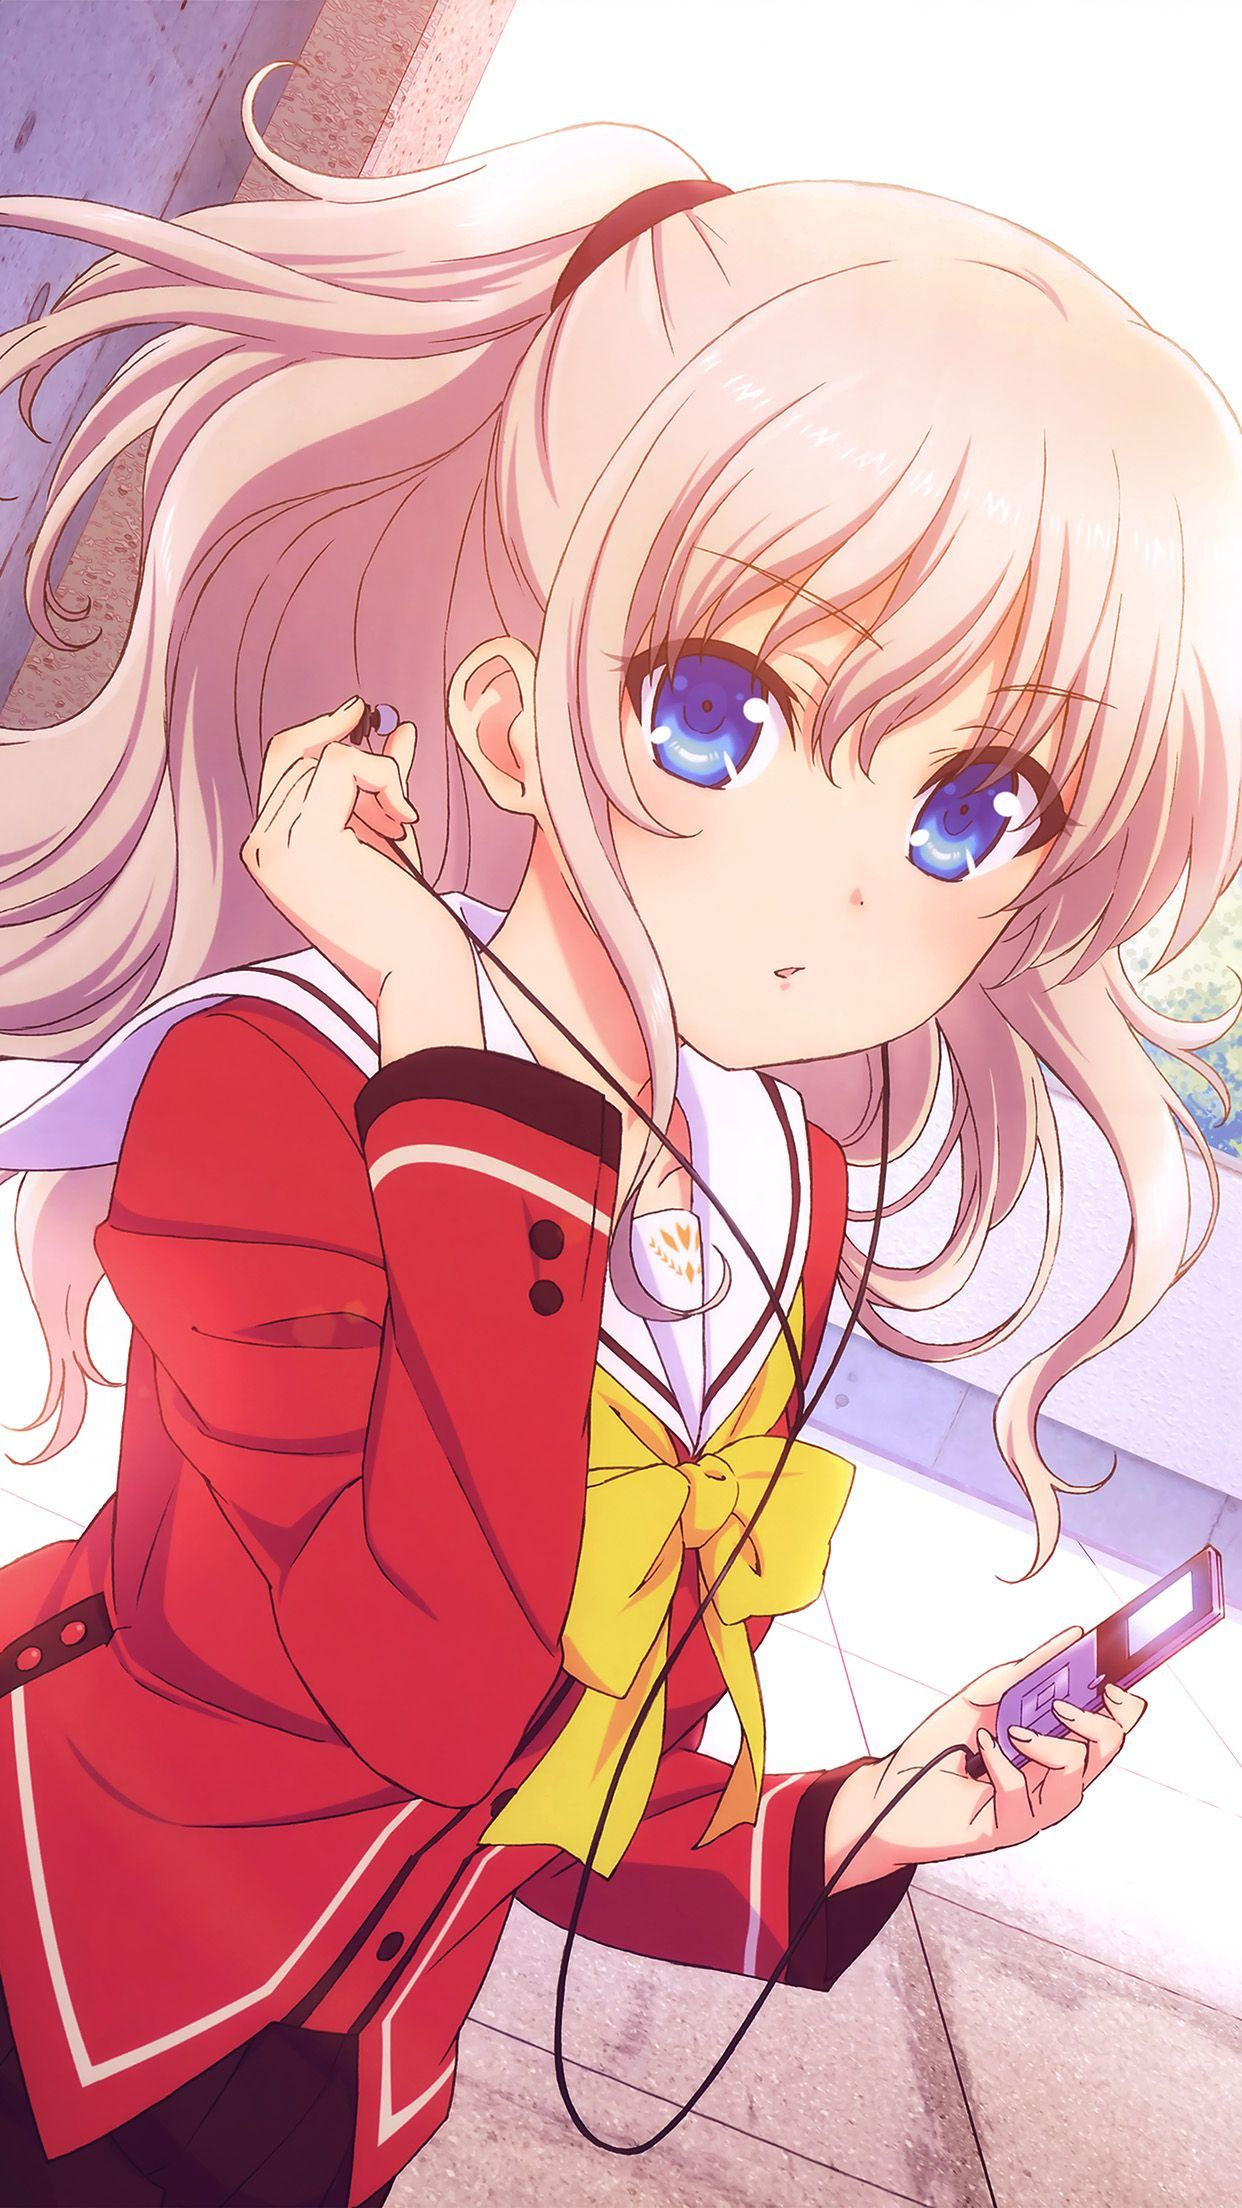 Android Anime Girls Cute Wallpapers - Wallpaper Cave